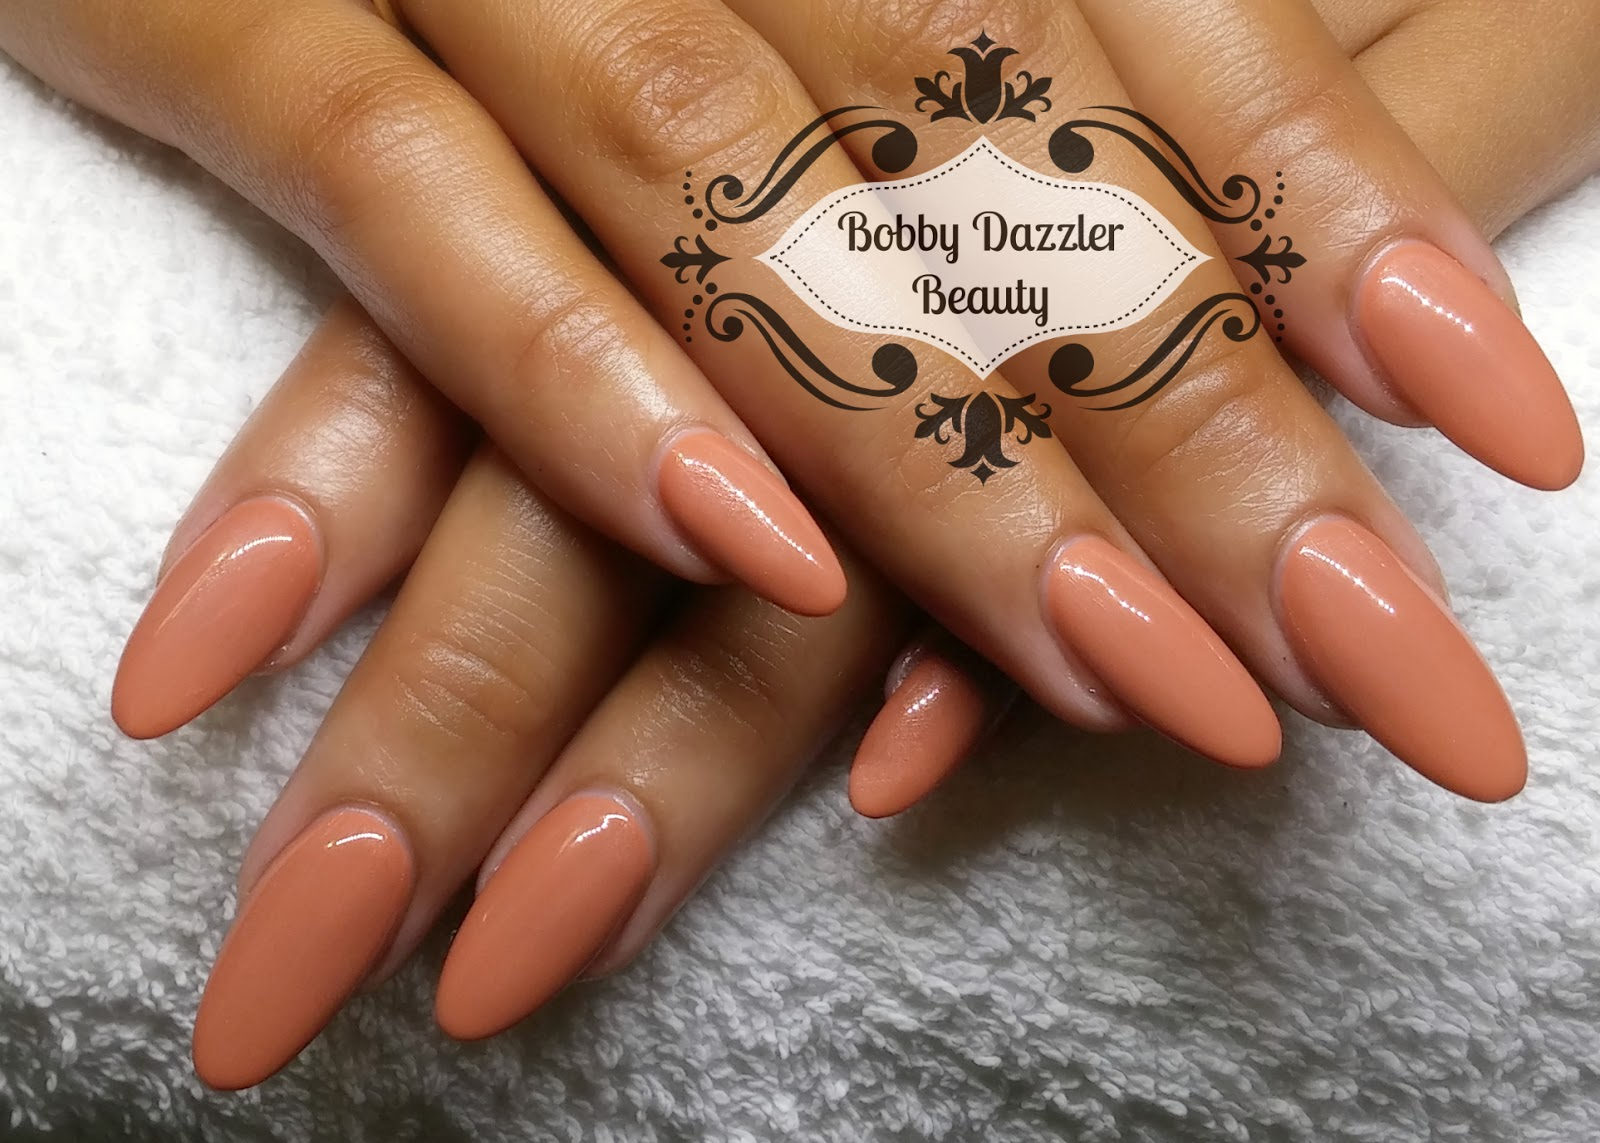 Bobby Dazzler: Bluesky Gel Polish Swatches | Neutrals and a Neon